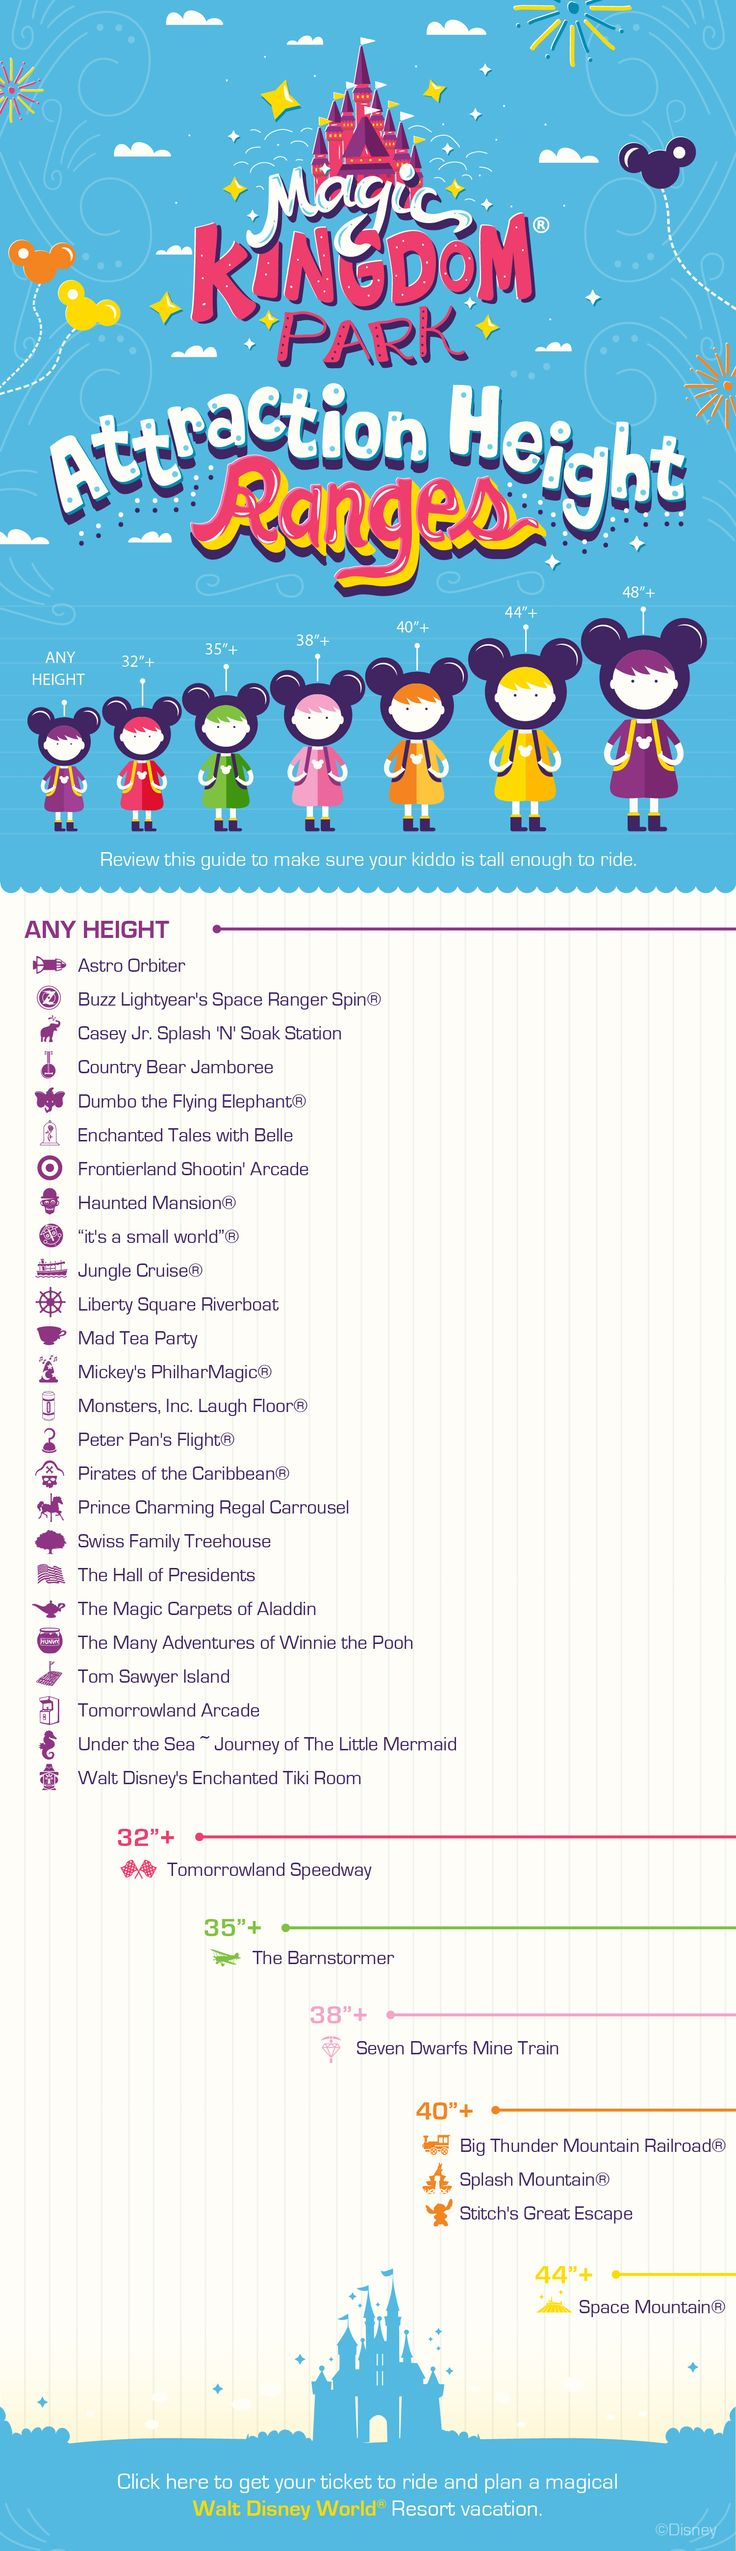 Magic Kingdom Park Attraction Height Ranges